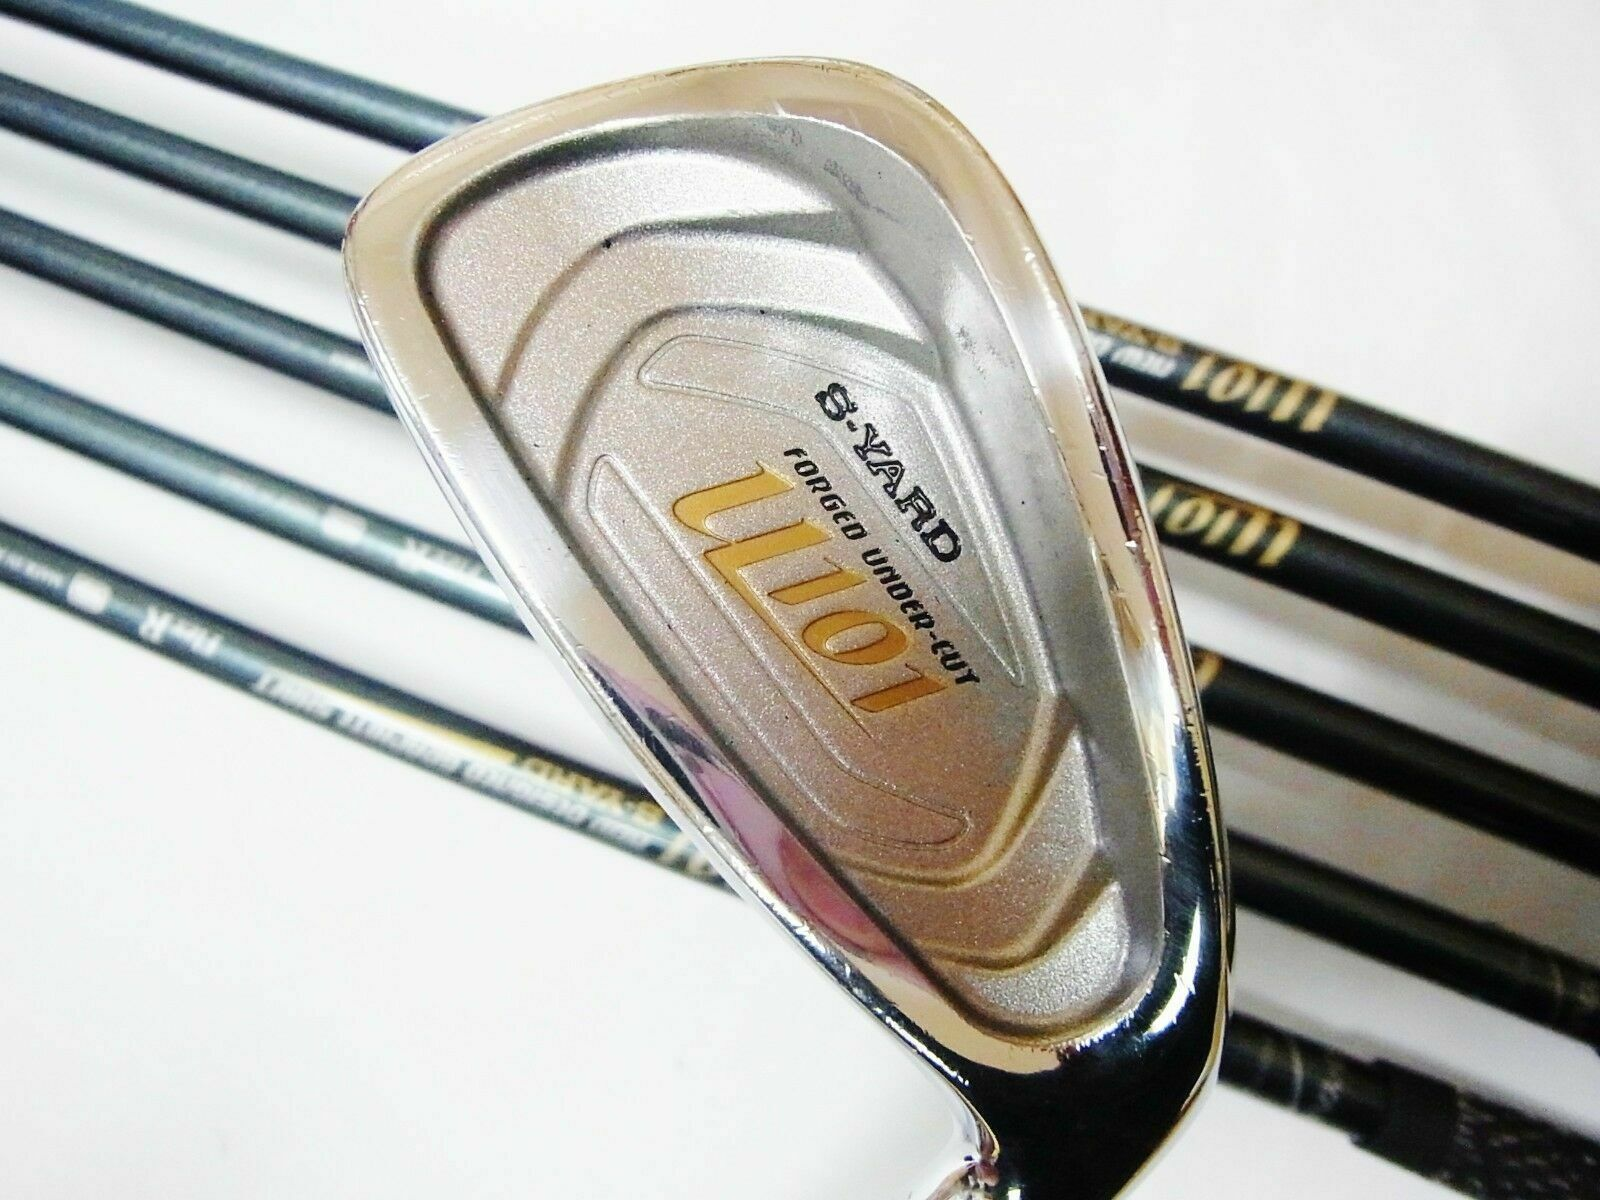 SEIKO S-YARD U101 NEW VERSION 6PC R-FLEX IRONS SET GOLF CLUBS 6287